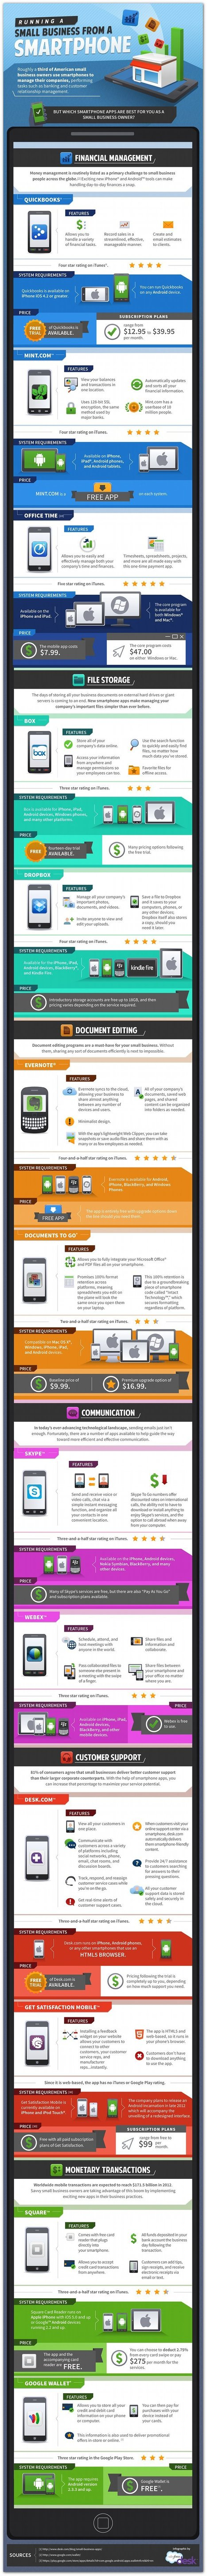 13 Business Apps for Busy Entrepreneurs (Infographic) | Social Mercor | Scoop.it